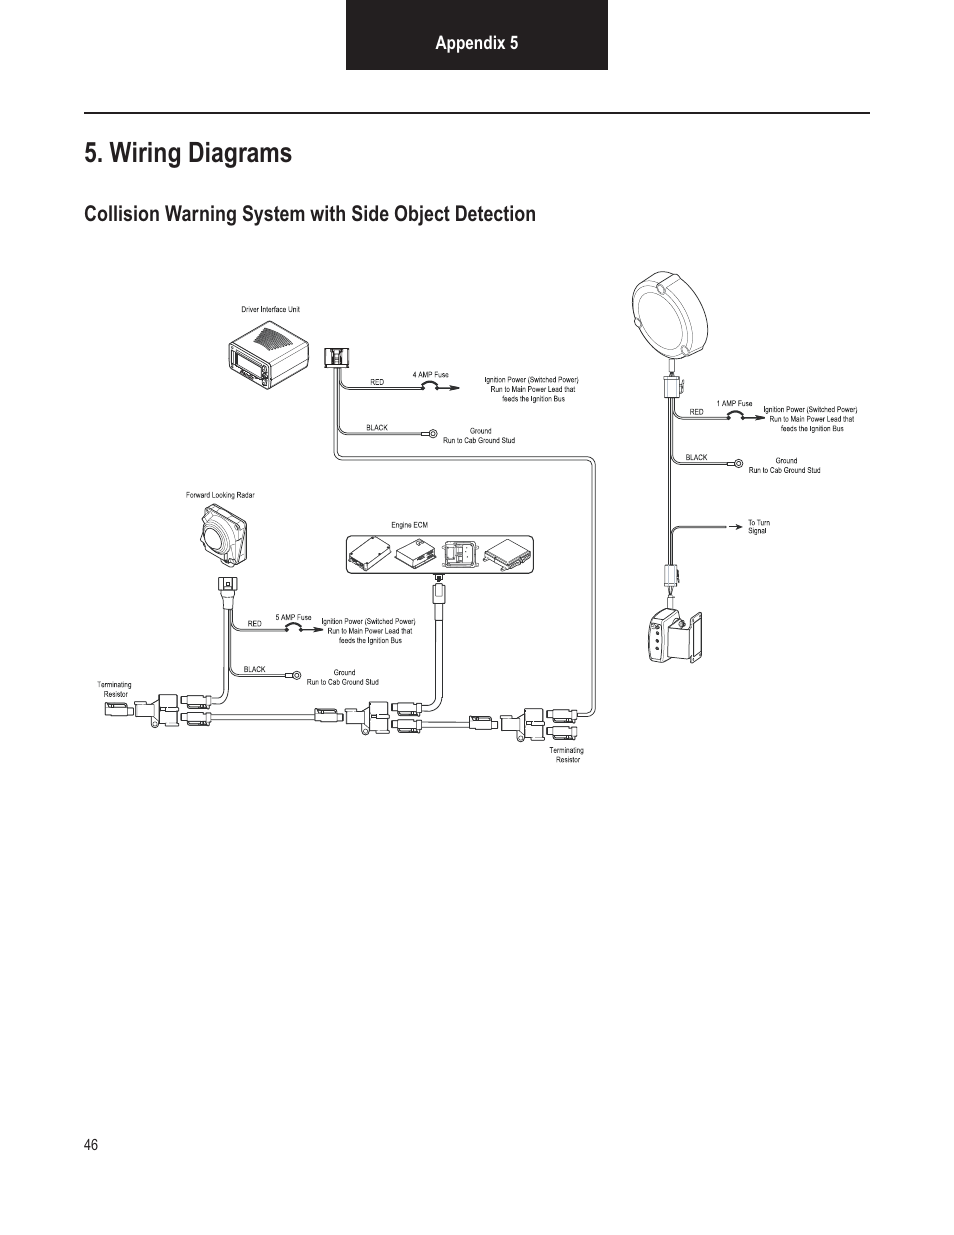 medium resolution of wiring diagrams bendix commercial vehicle systems vorad vs 400 installation notes user manual page 48 54